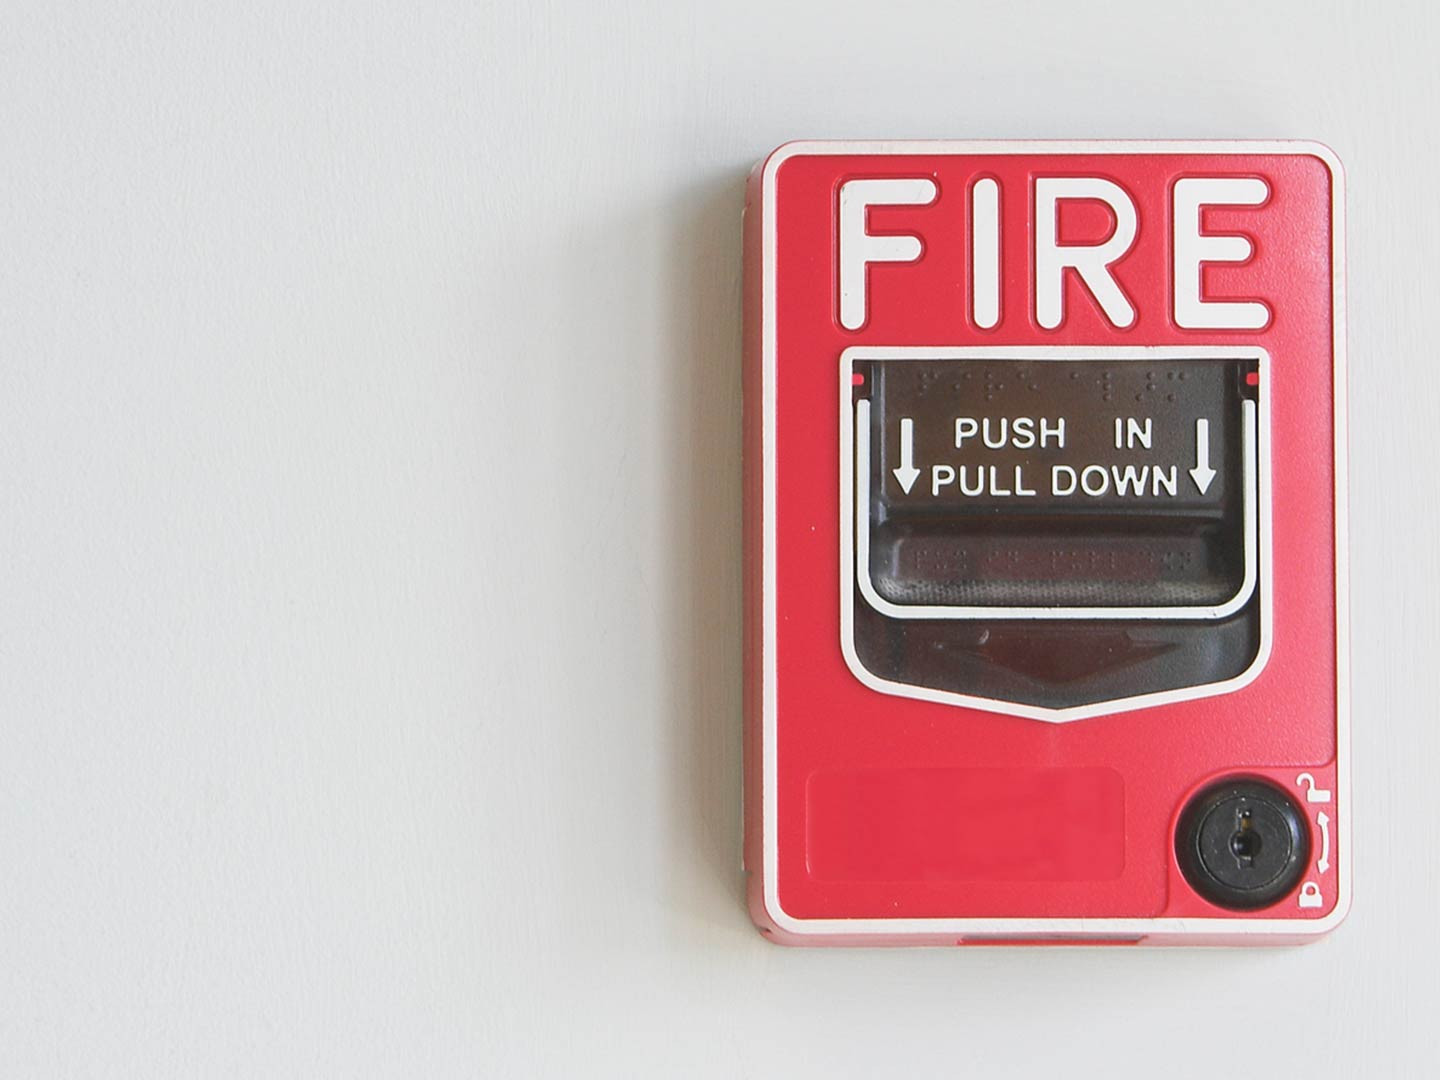 Make the smart choice by ordering a fire alarm system